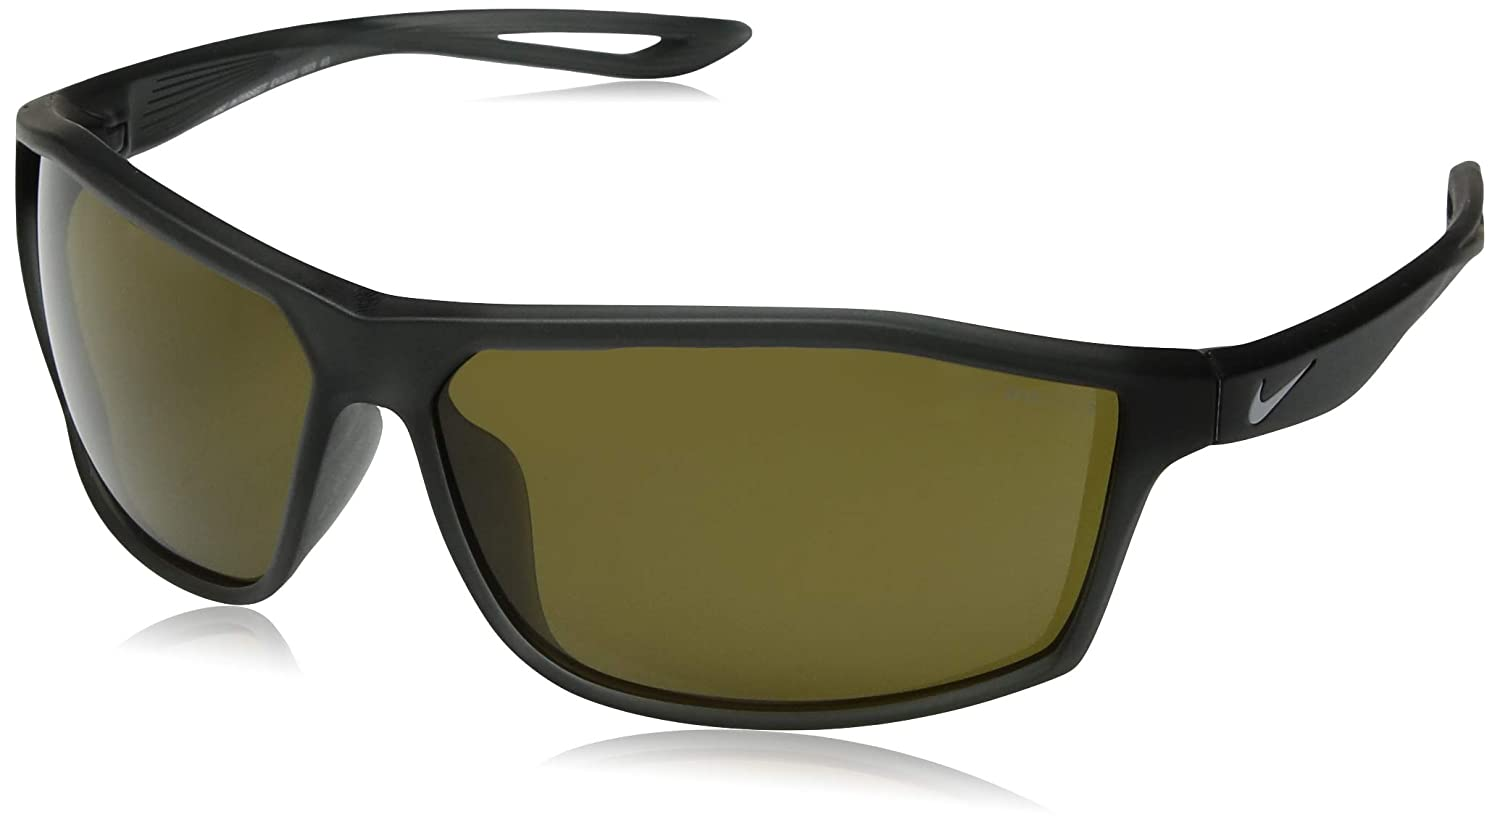 77da42e0db Amazon.com  Nike Mens Intersect Matte Grey with Grey Silver Flash Lens  Sunglasses  Sports   Outdoors